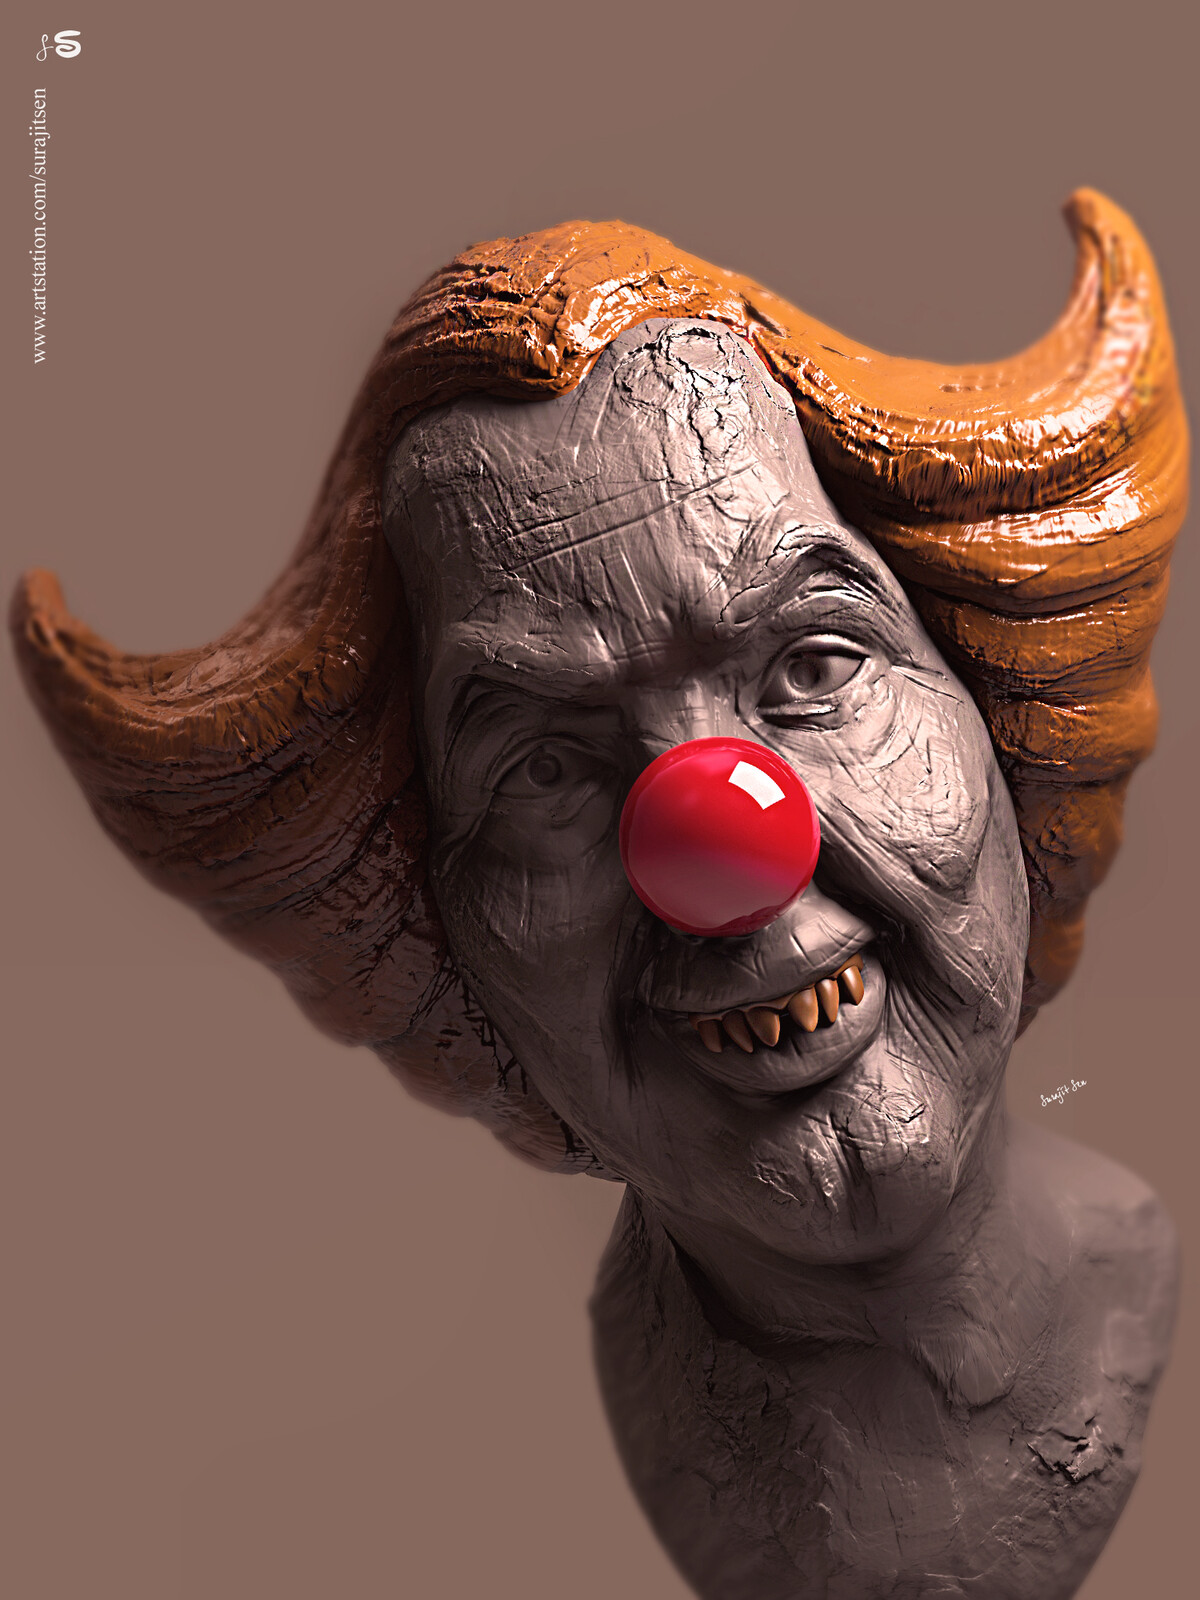 #quicksculpt #doodle #study One of my free time speed rough digital Sculpture. Wish to share….:)